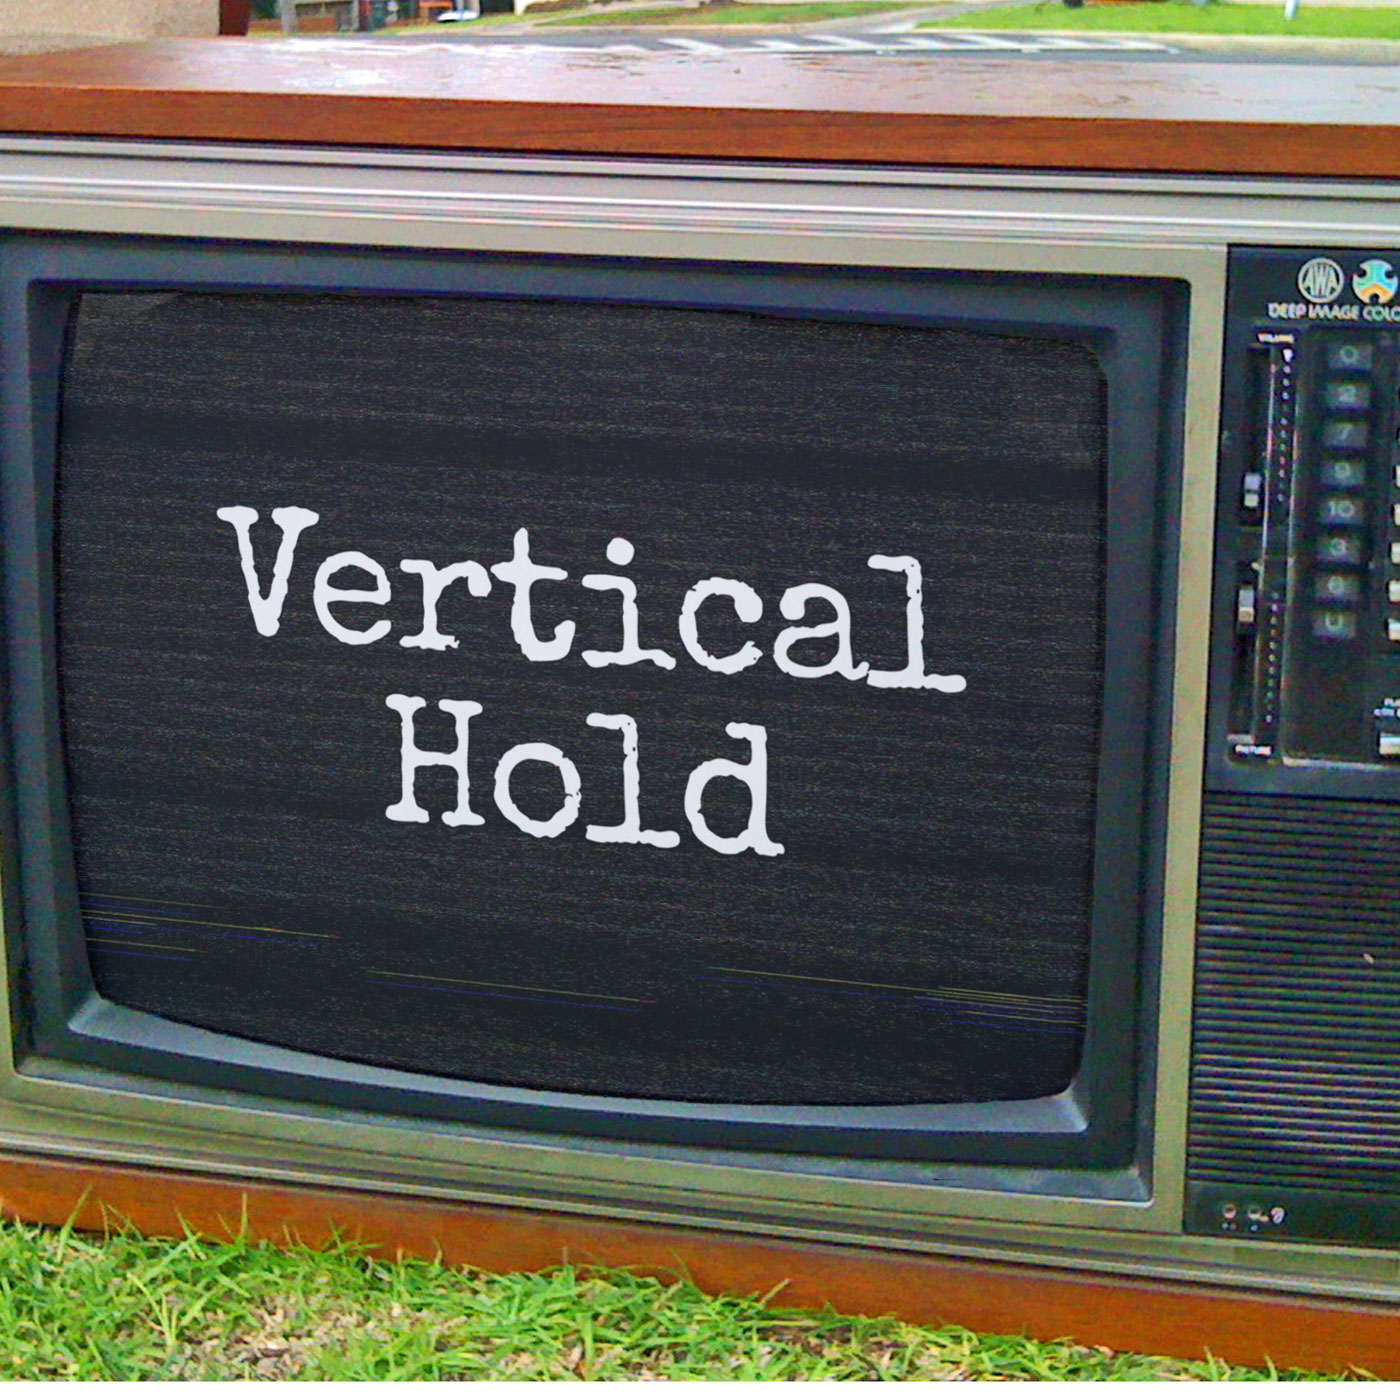 Artwork for Amazon Kindle Unlimited, Freeview FV and Facebook Wi-Fi: Vertical Hold Episode 101